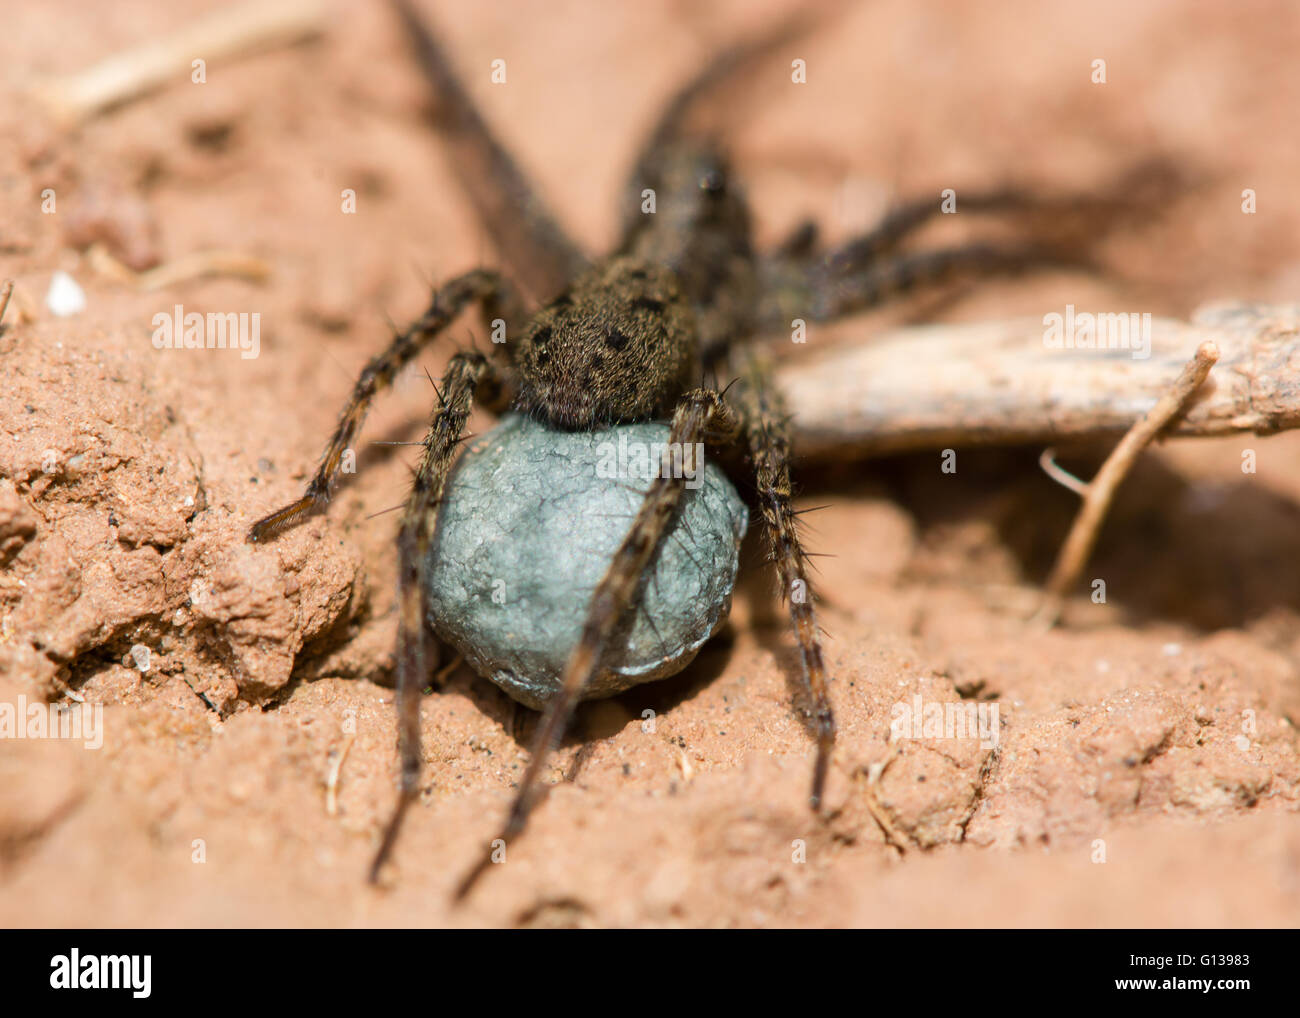 Wolf spider (Pardosa sp.) egg sac. Blue silk sac containing eggs attached to spinarets of female spider in the family - Stock Image